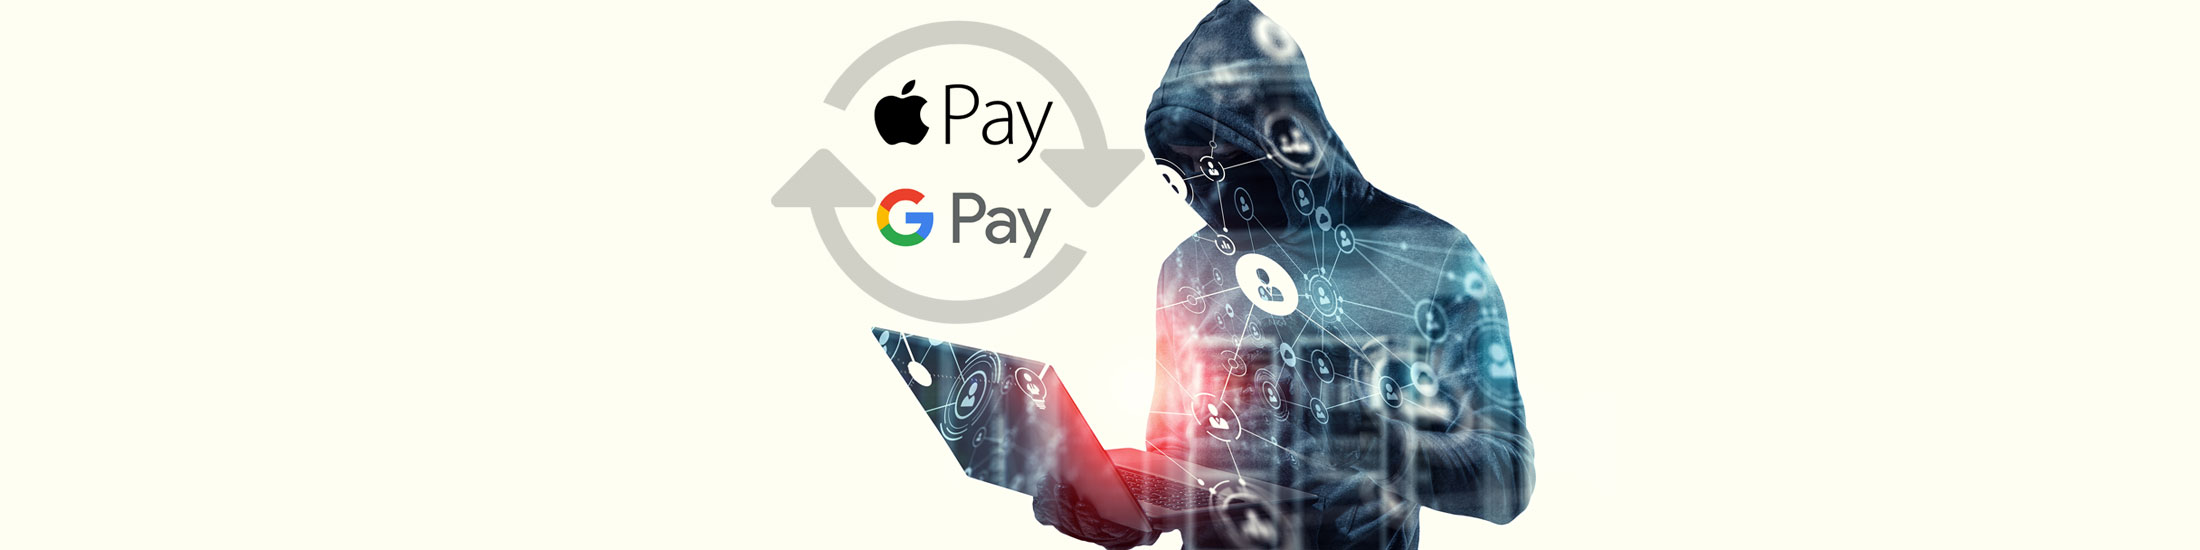 Report: Friendly Fraud on the Rise, Merchants Less Successful Challenging Apple Pay and Google Pay Chargebacks